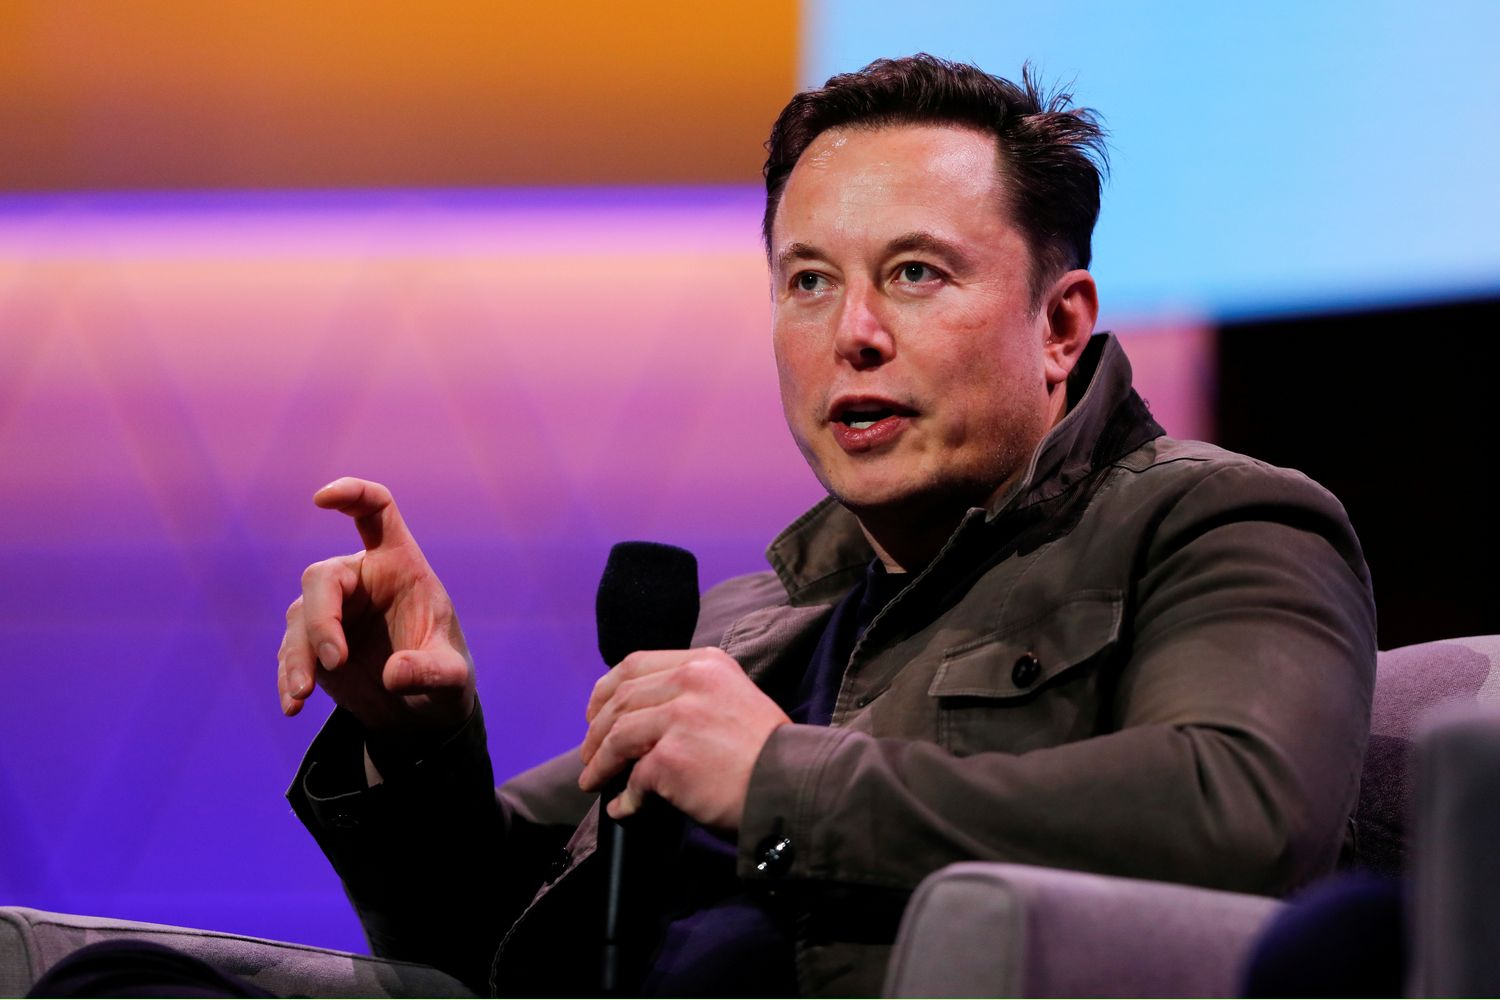 Tesla CEO Elon Musk gestures during a conversation at the E3 gaming convention in Los Angeles on June 13. (Reuters photo)